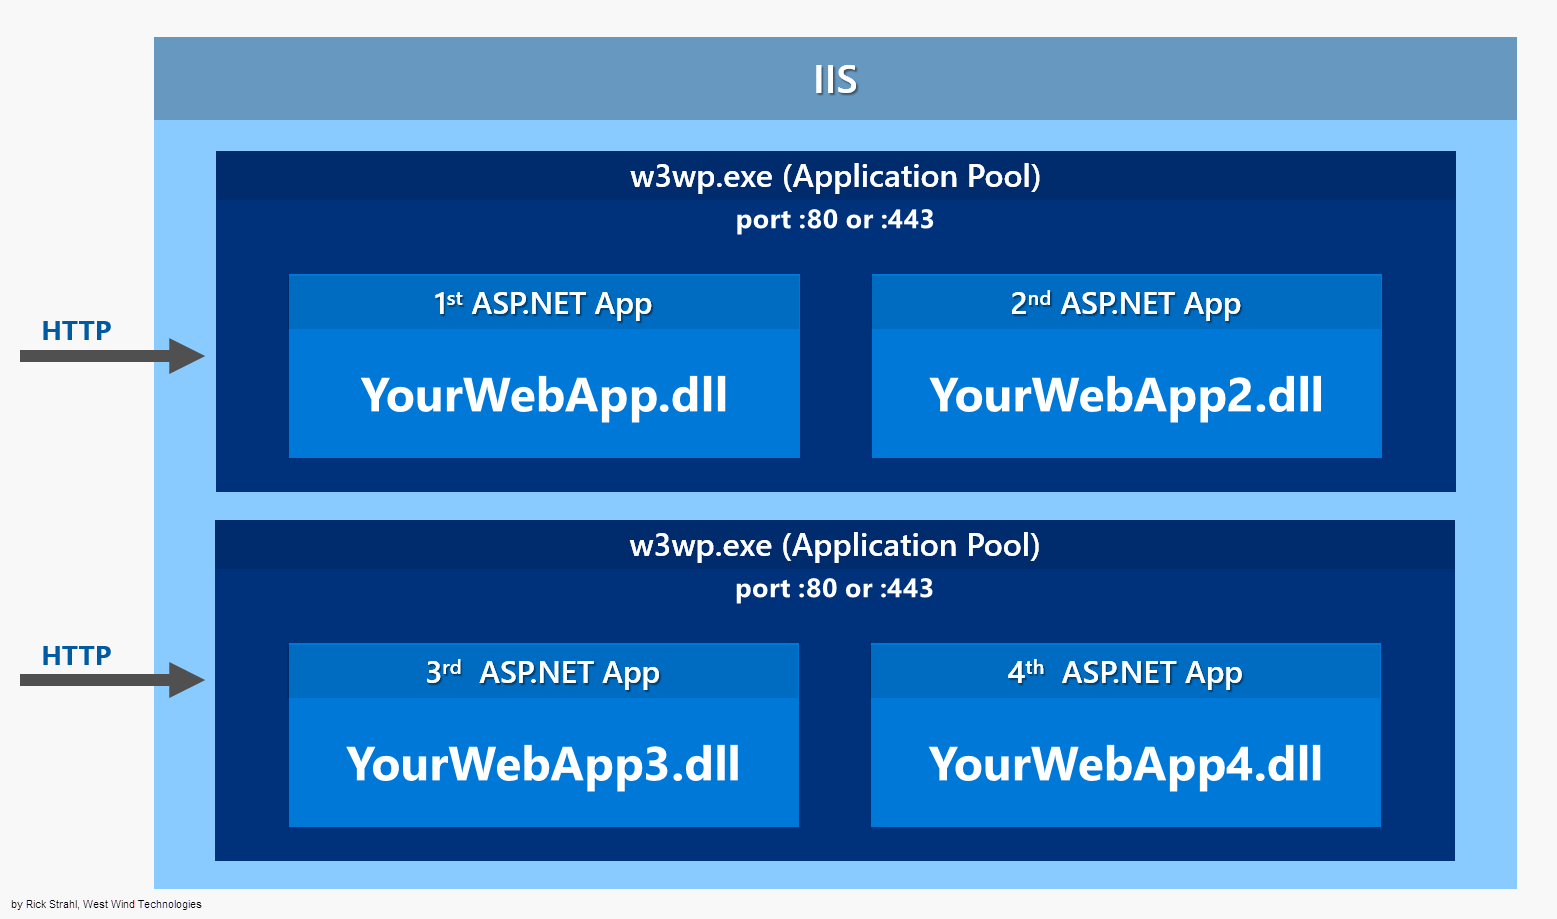 Hosting ASP.NET on IIS